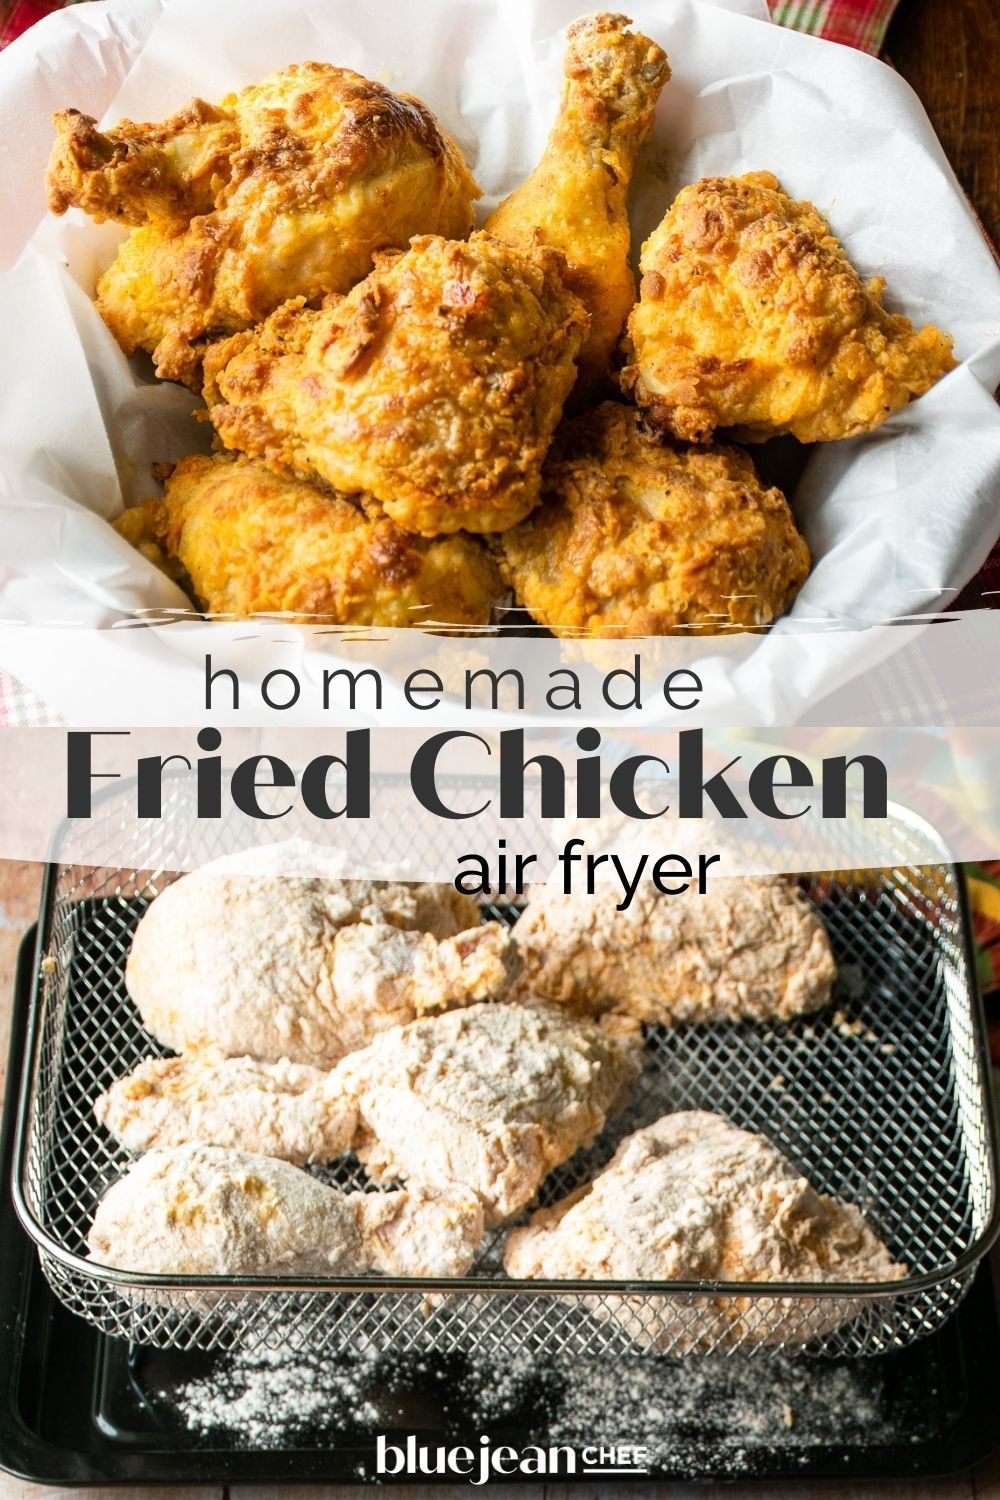 Air Fryer Fried Chicken Blue Jean Chef Meredith Laurence Recipe In 2020 Air Fryer Dinner Recipes Homemade Fried Chicken Actifry Recipes